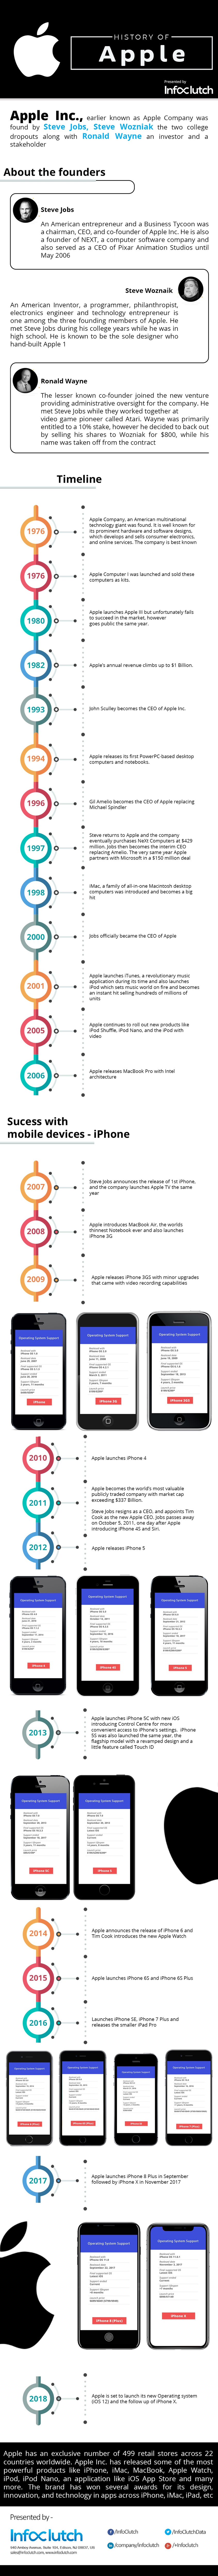 Success Story Of Apple #infographic